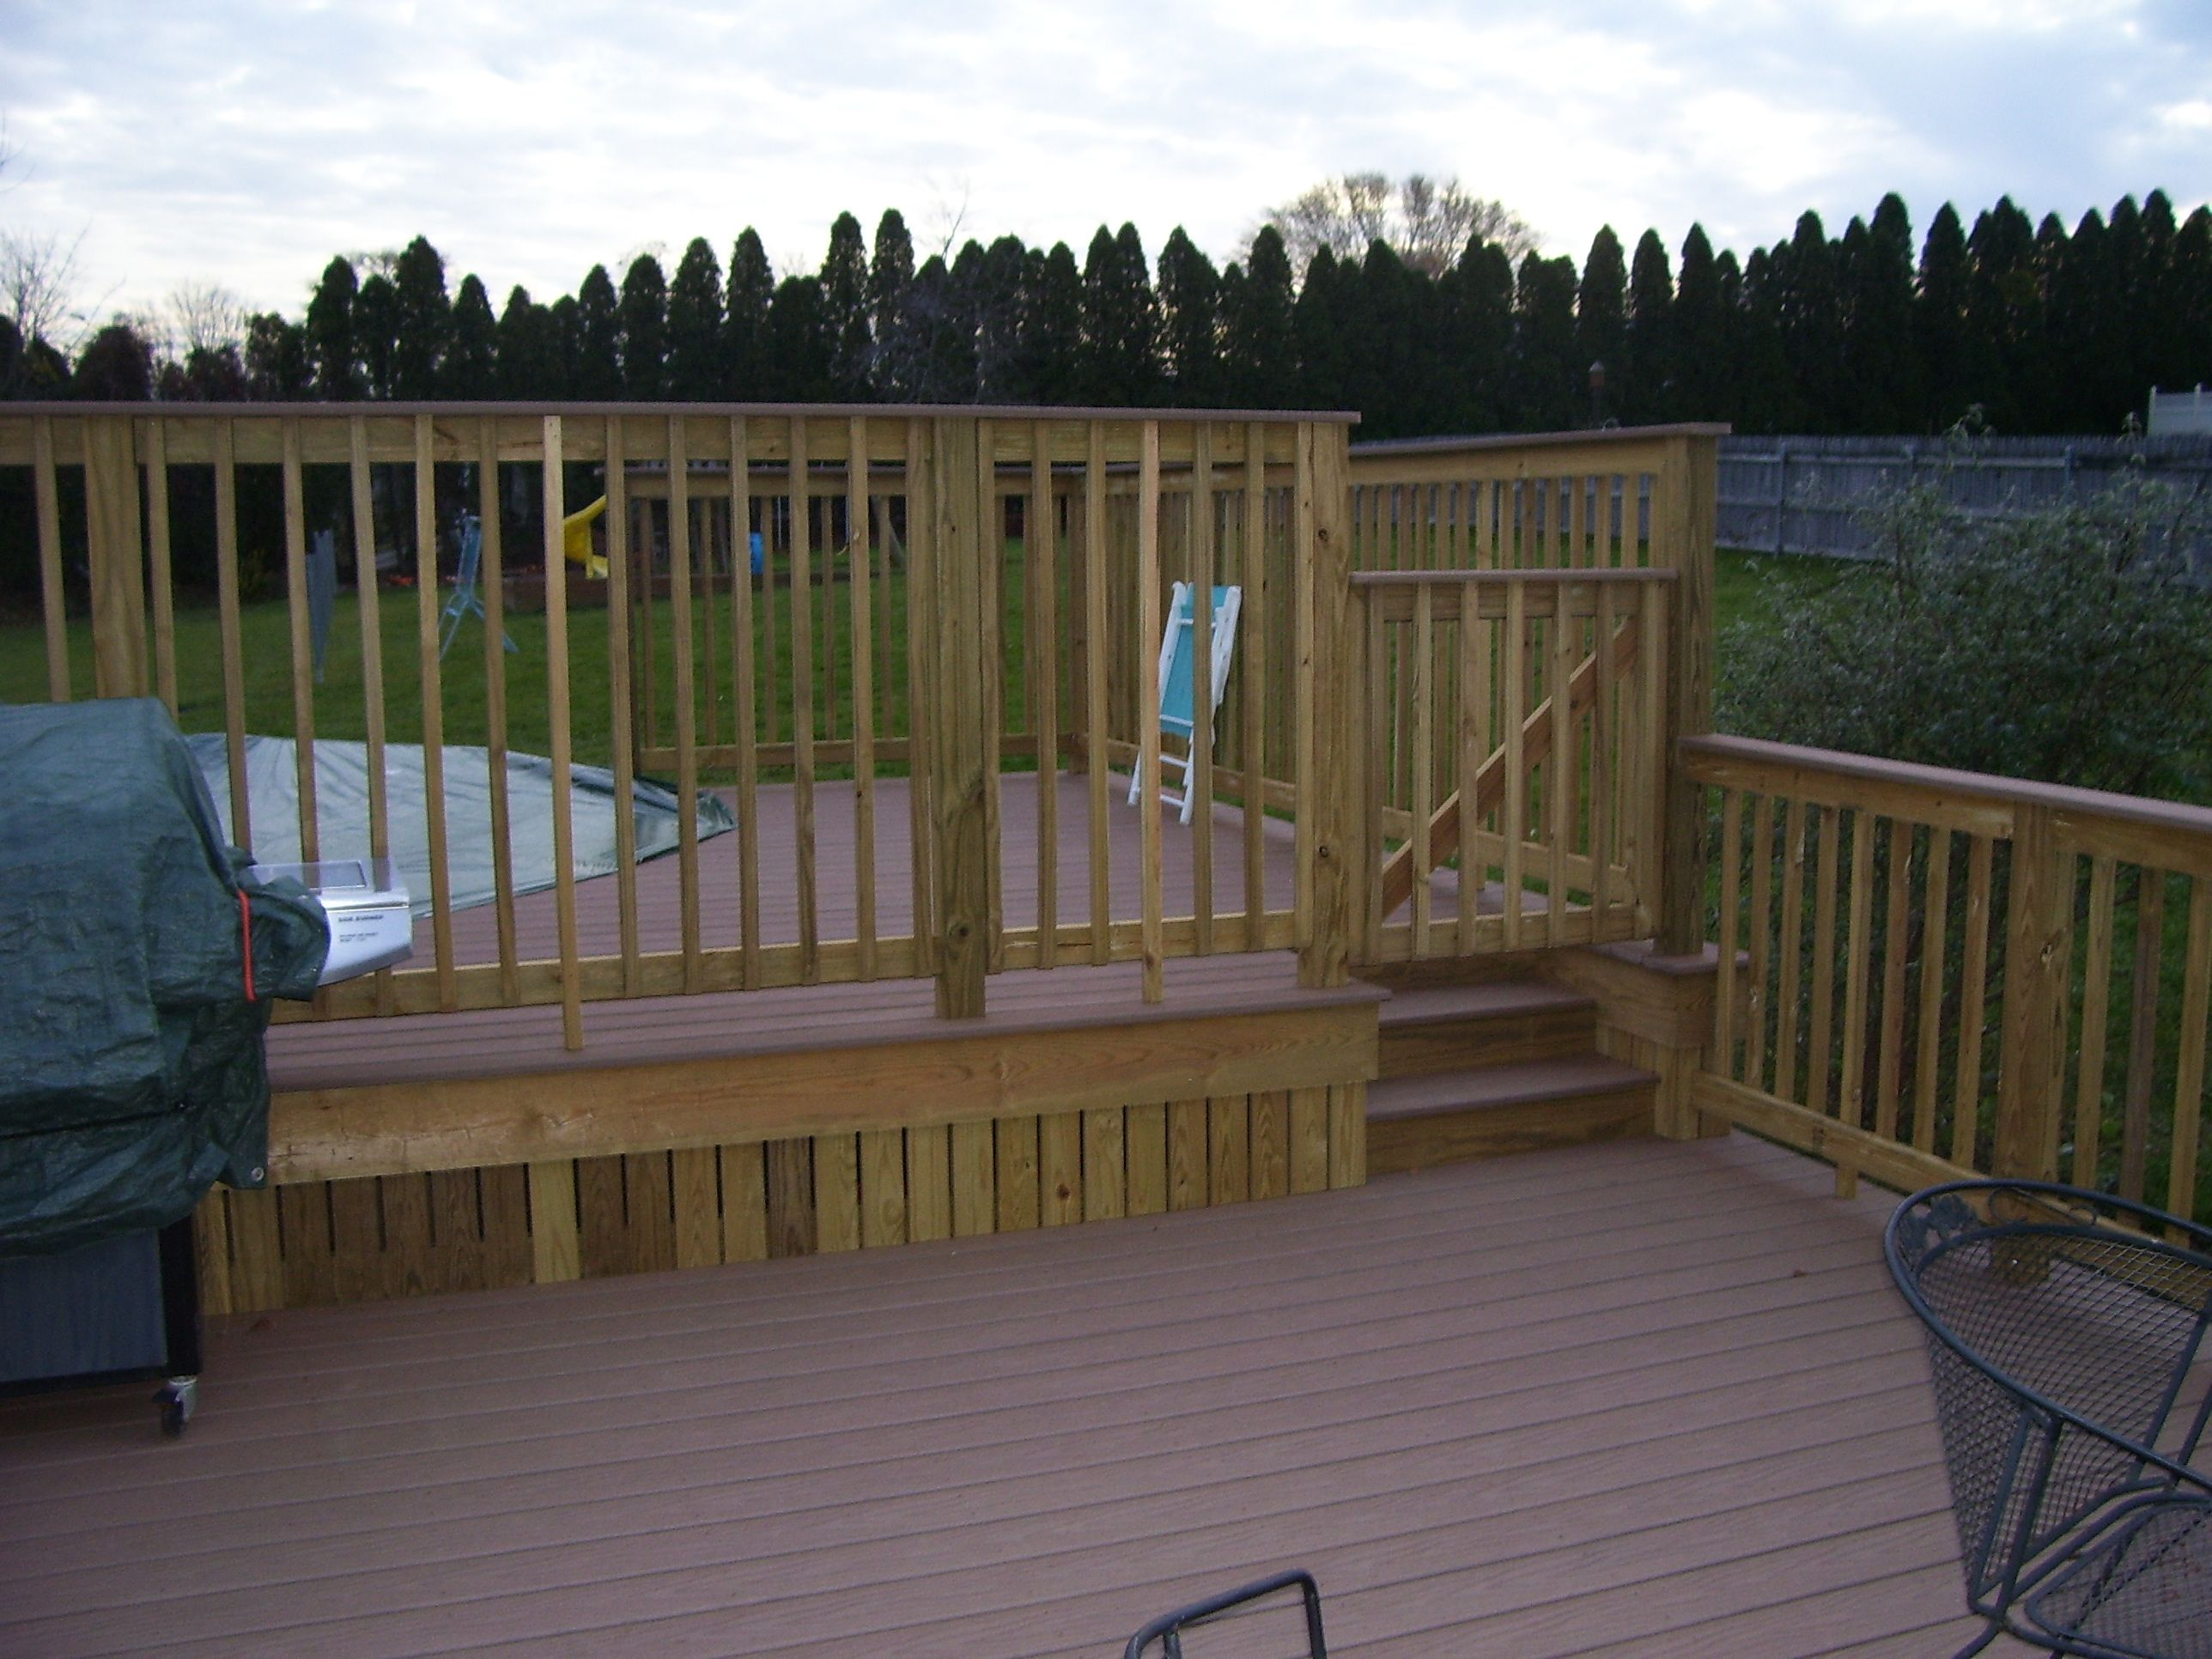 Two Tier Deck Around The Pool Composite Decking And Pressure Treated Trim Pool Patio Backyard Pool Decks And Porches